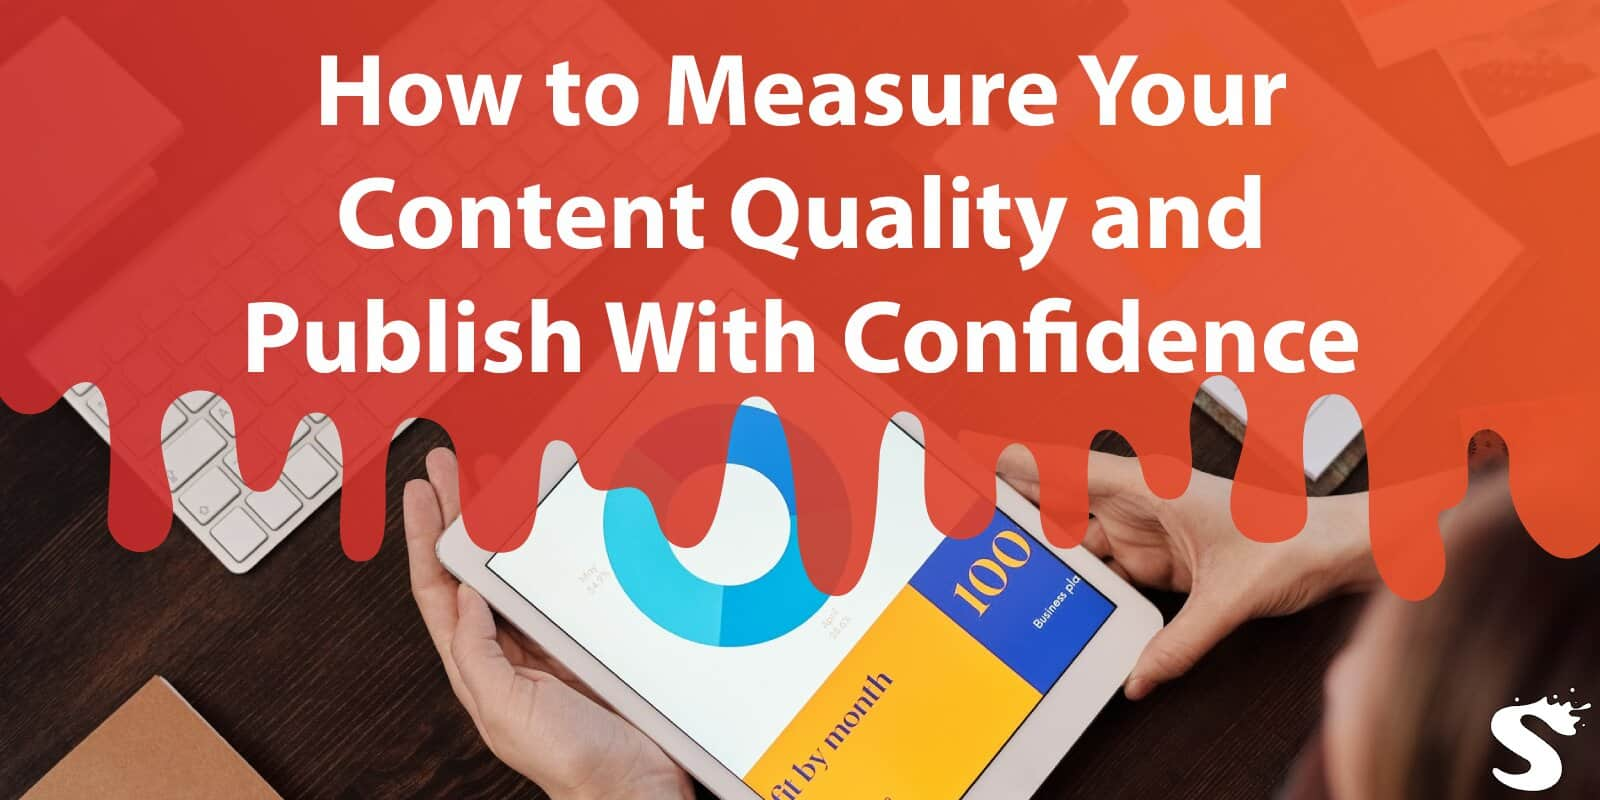 How to Measure Your Content Quality and Publish Every Post With Great Confidence